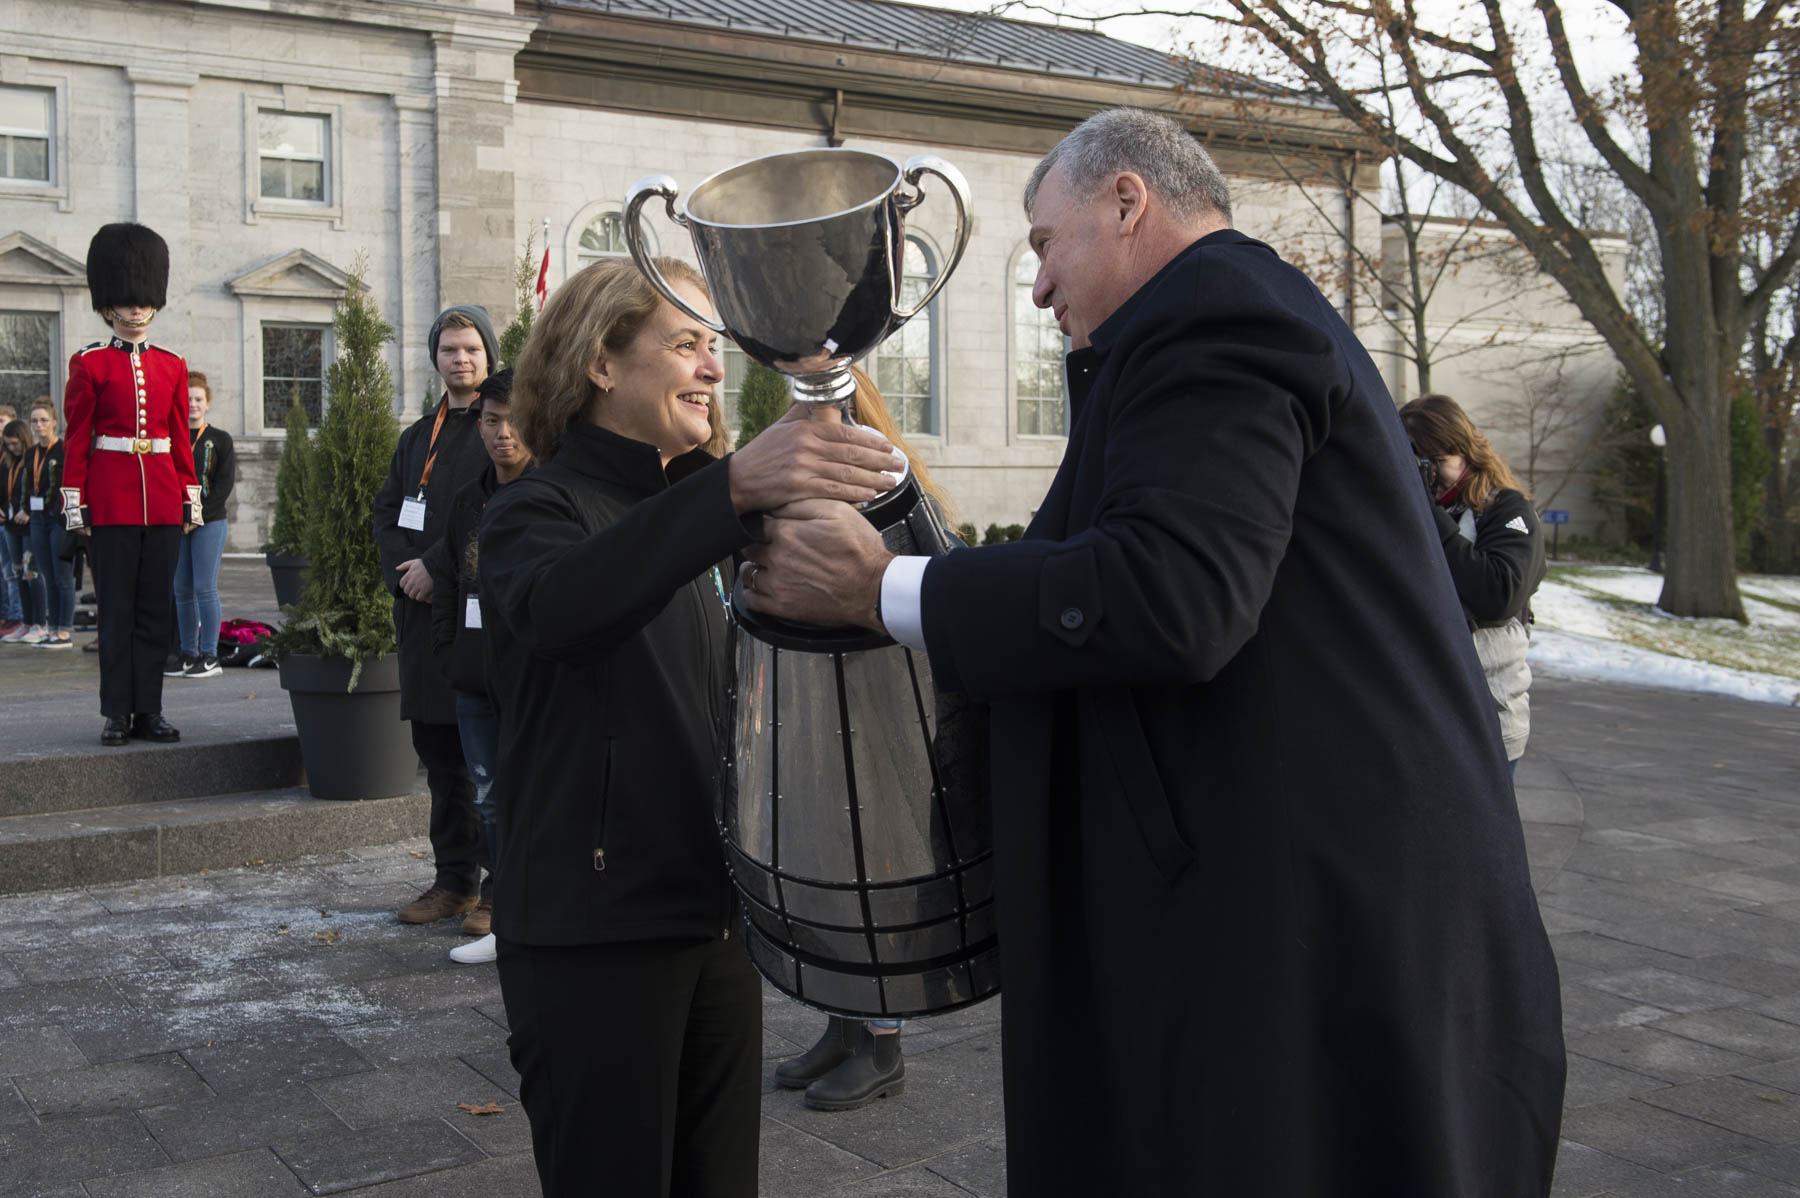 On the occasion of the 105th Grey Cup Championship Game, taking place this year in Ottawa, Governor General Julie Payette welcomed the Grey Cup at Rideau Hall, on November 21, 2017.